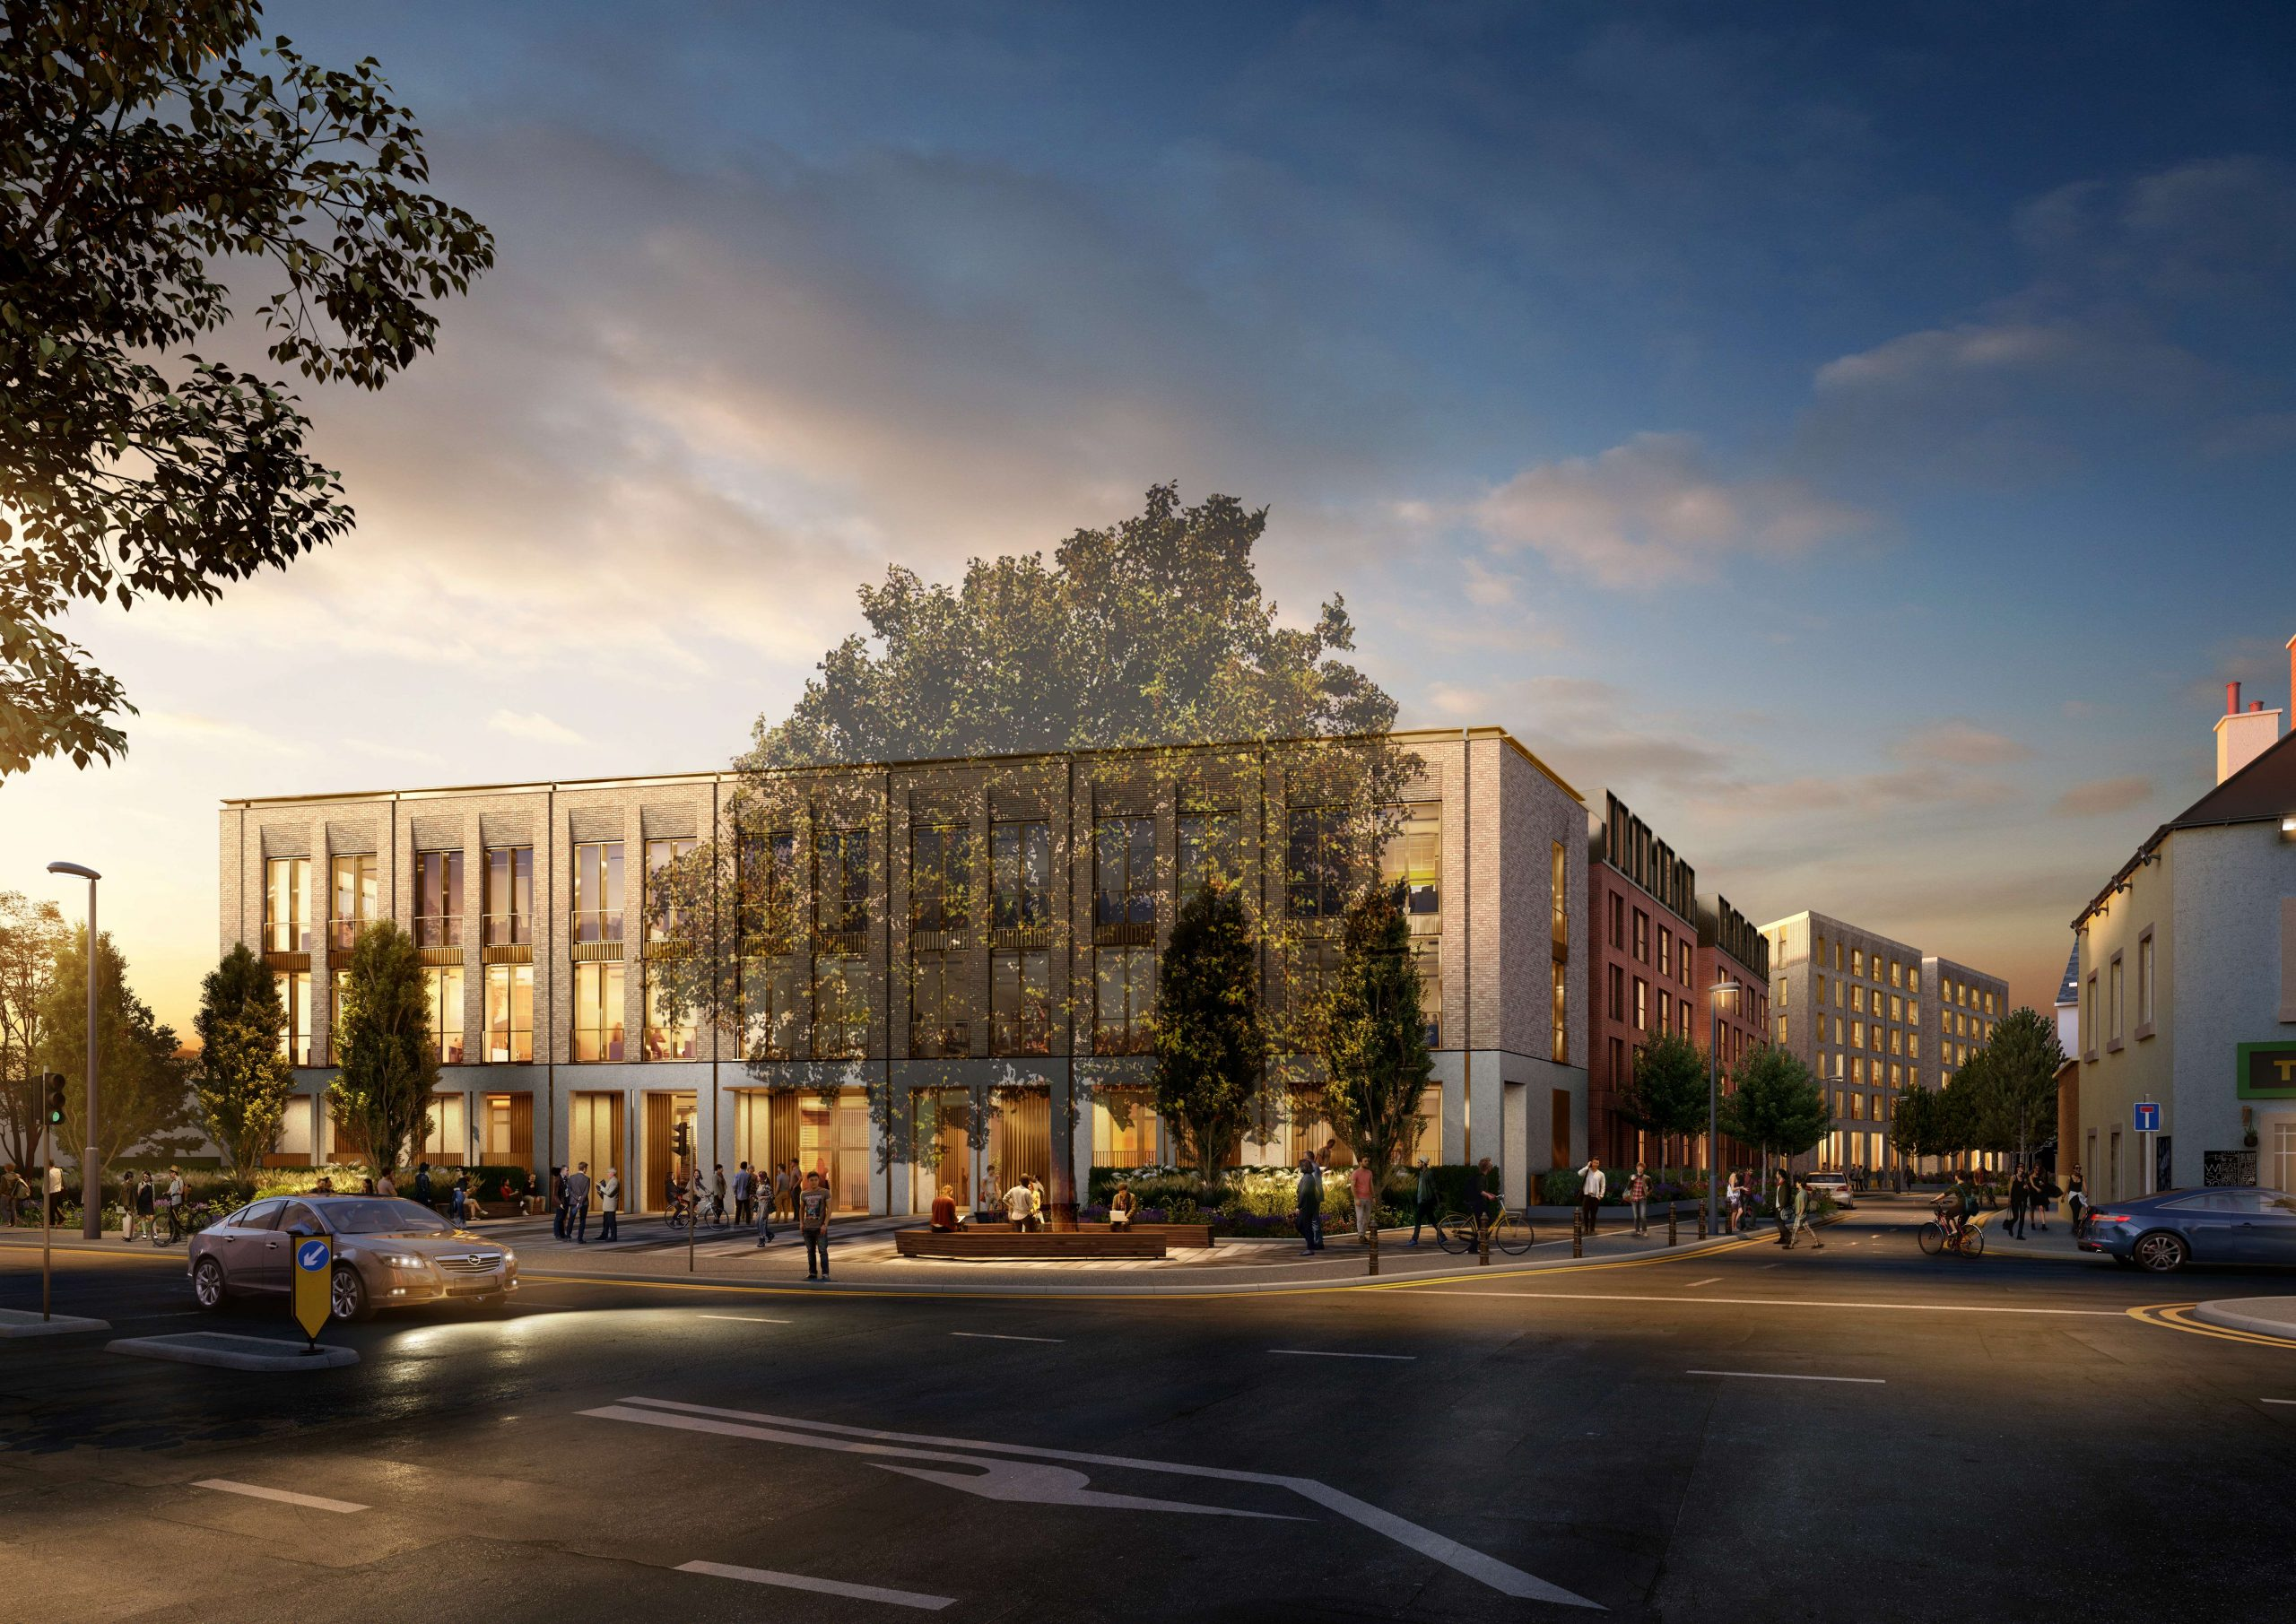 Unite Students wins planning approval for £57m development in Nottingham